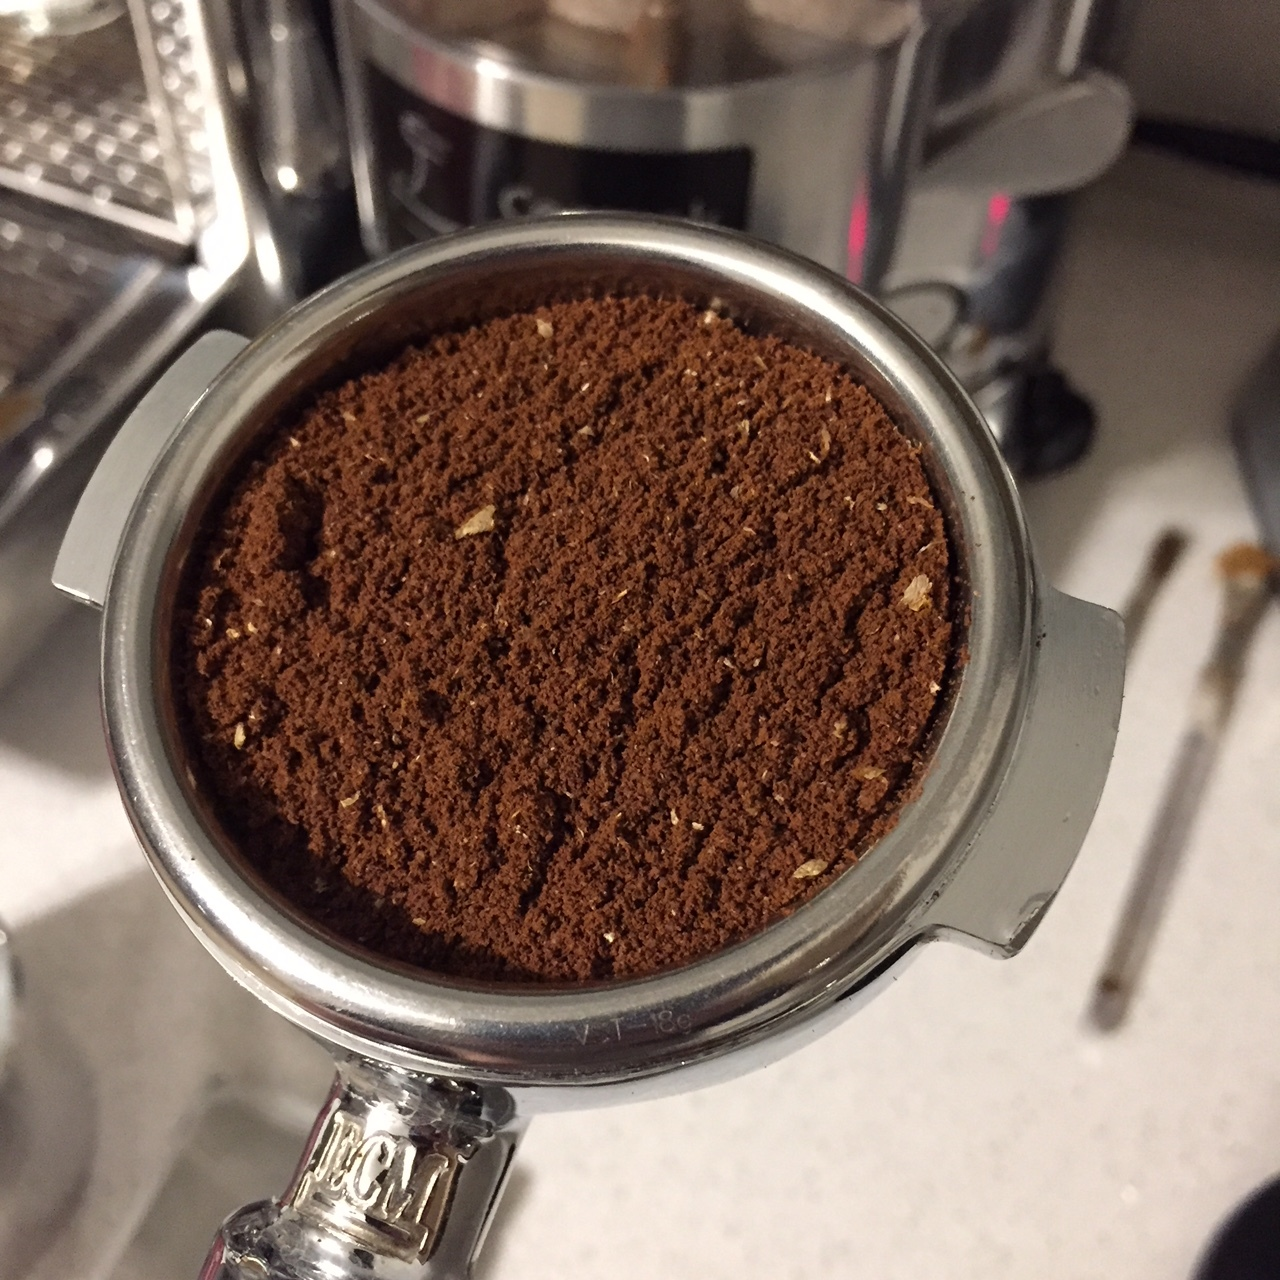 Bumping up the ratio made for easier pulls, better tasting shots, and better filled the 18 gram VST basket.